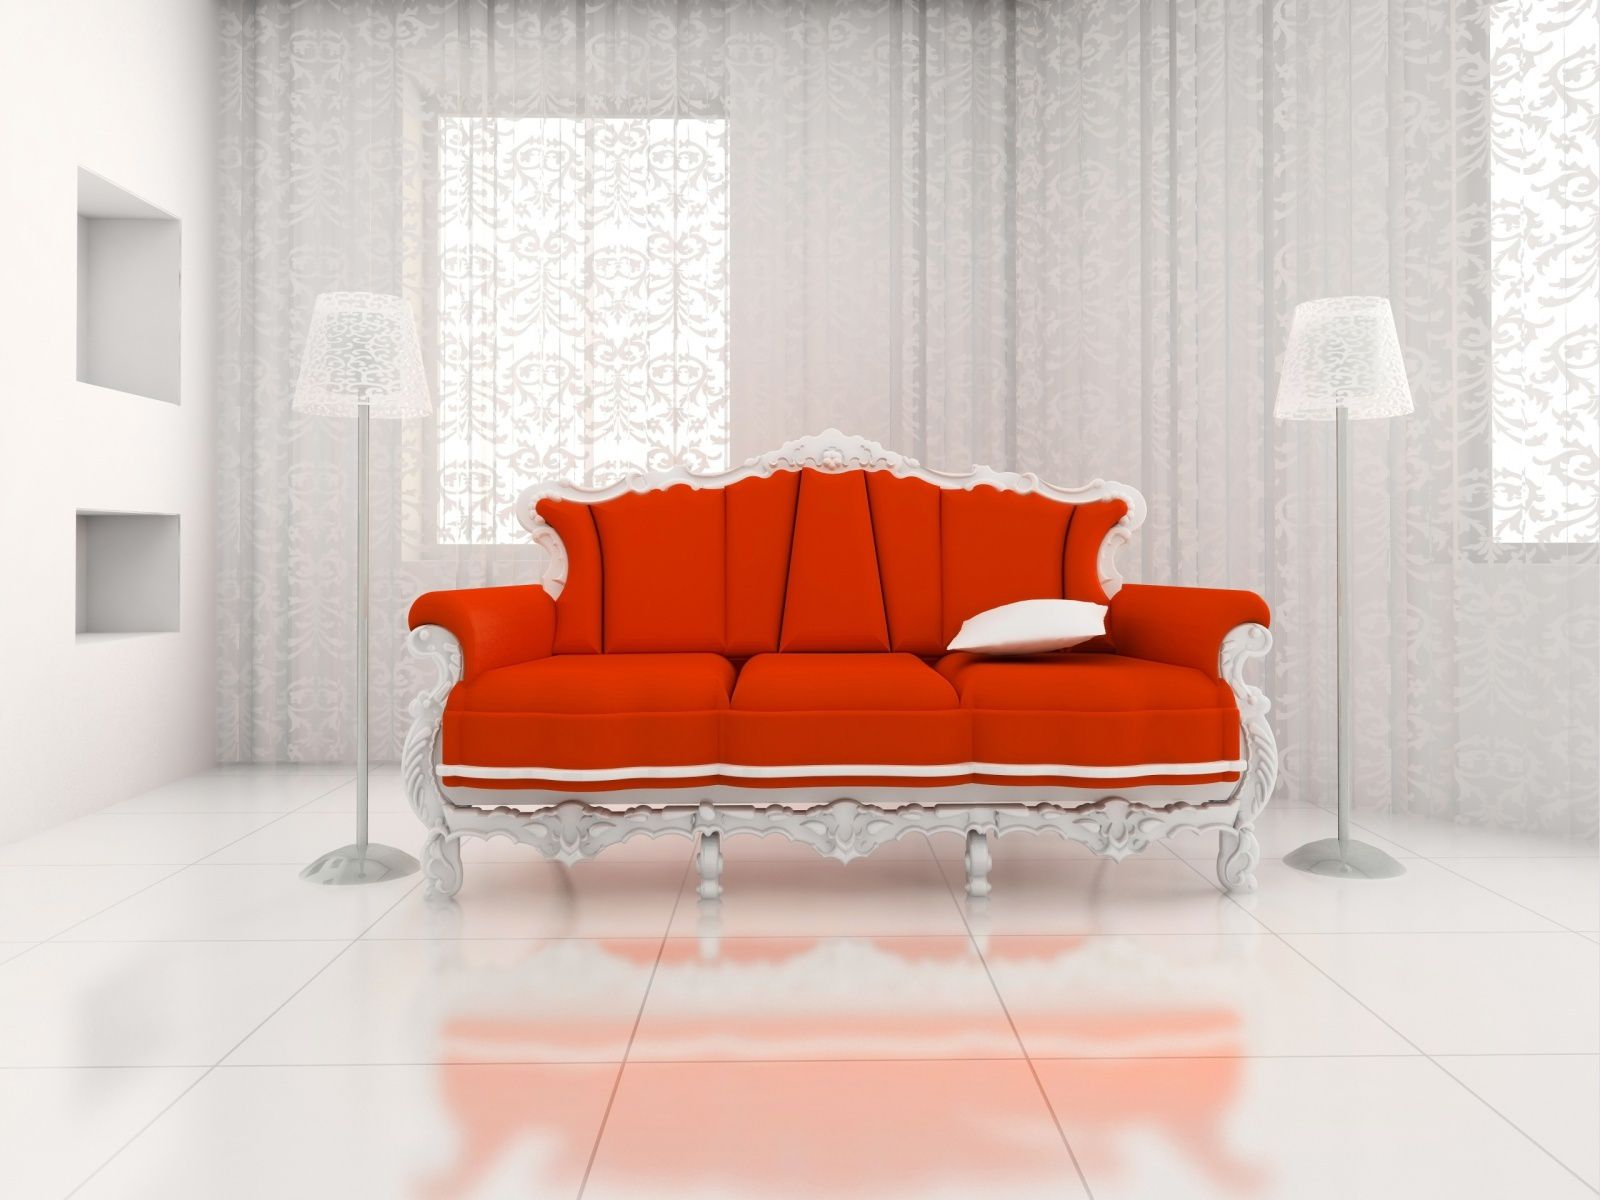 Décoration - Canapé - Rouge - Maison - Wallpaper - Free